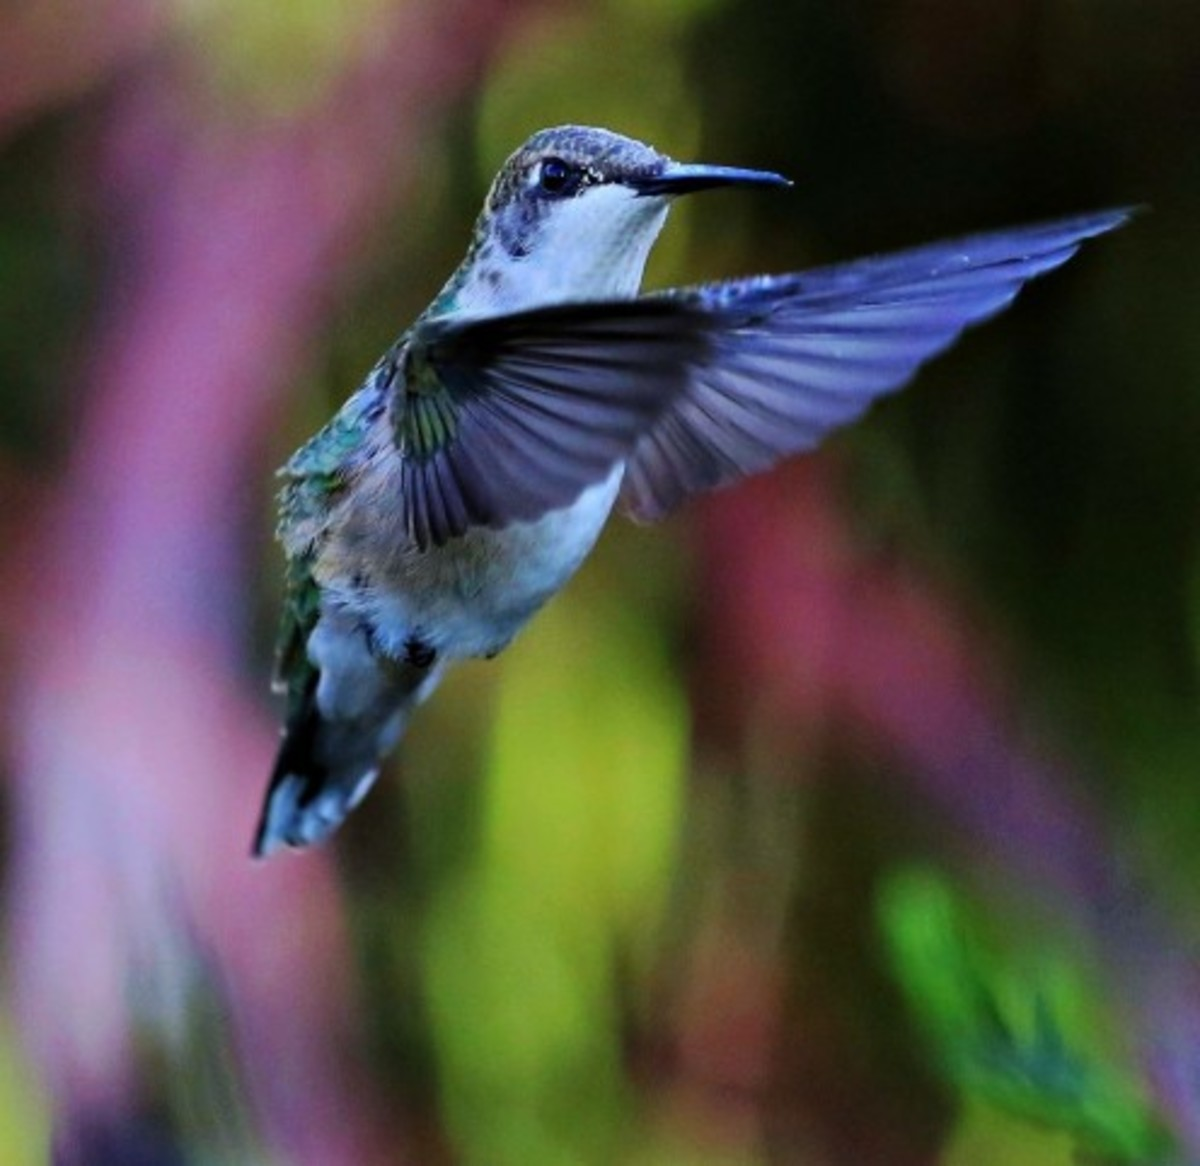 I believe this is a blue-throated hummingbird